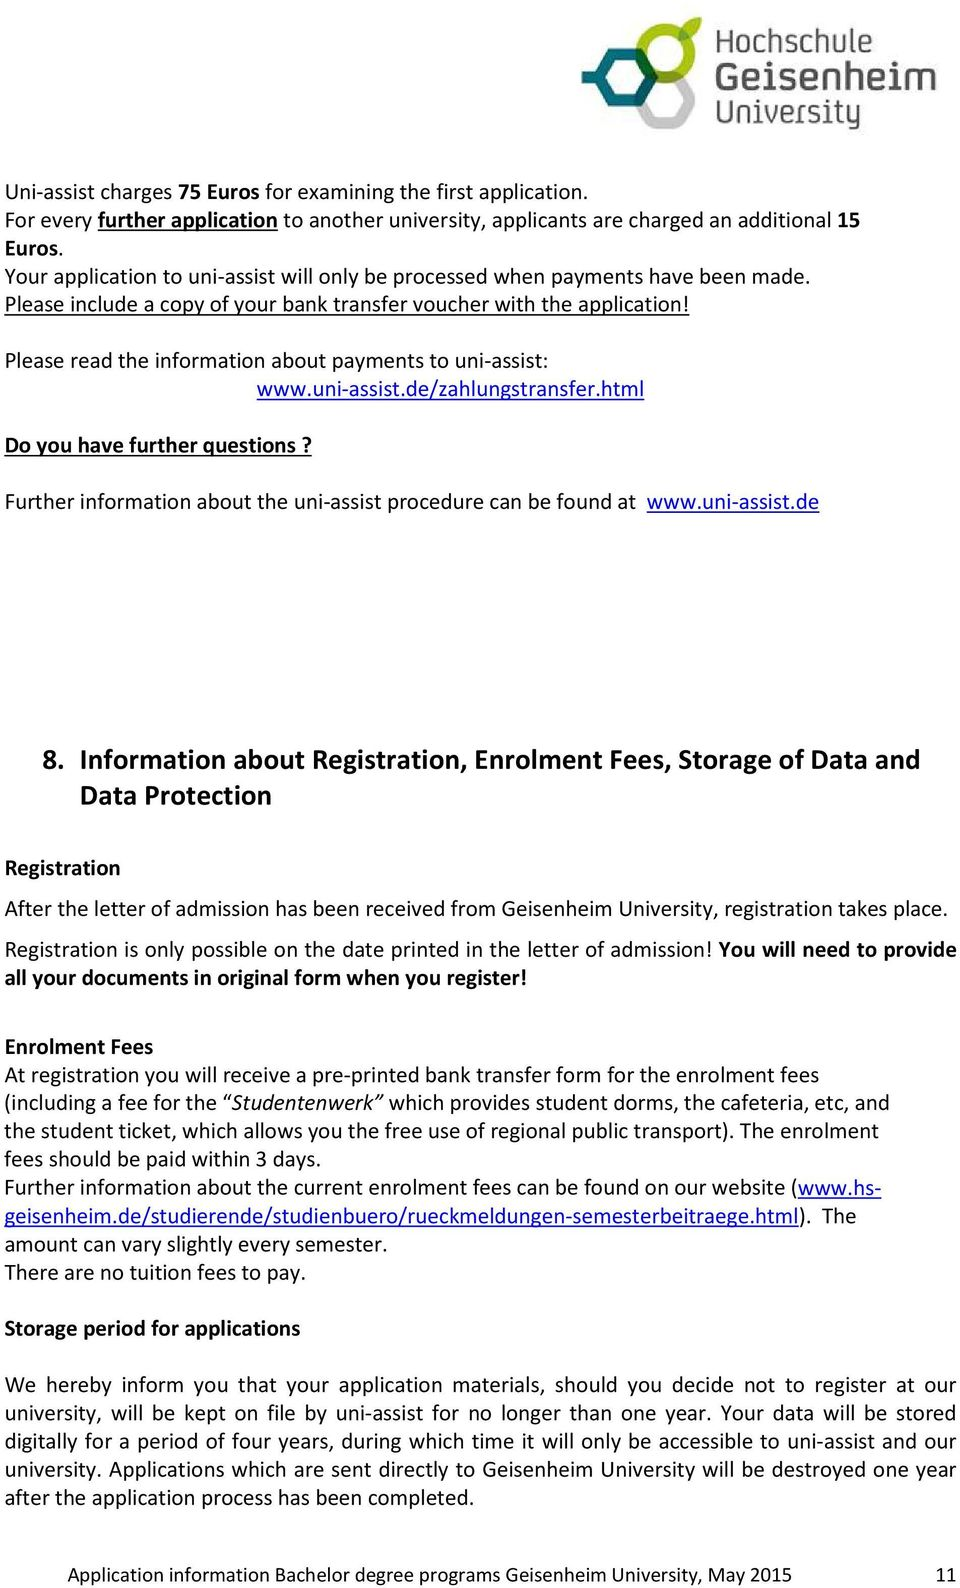 Please read the information about payments to uni-assist: www.uni-assist.de/zahlungstransfer.html Do you have further questions? Further information about the uni-assist procedure can be found at www.